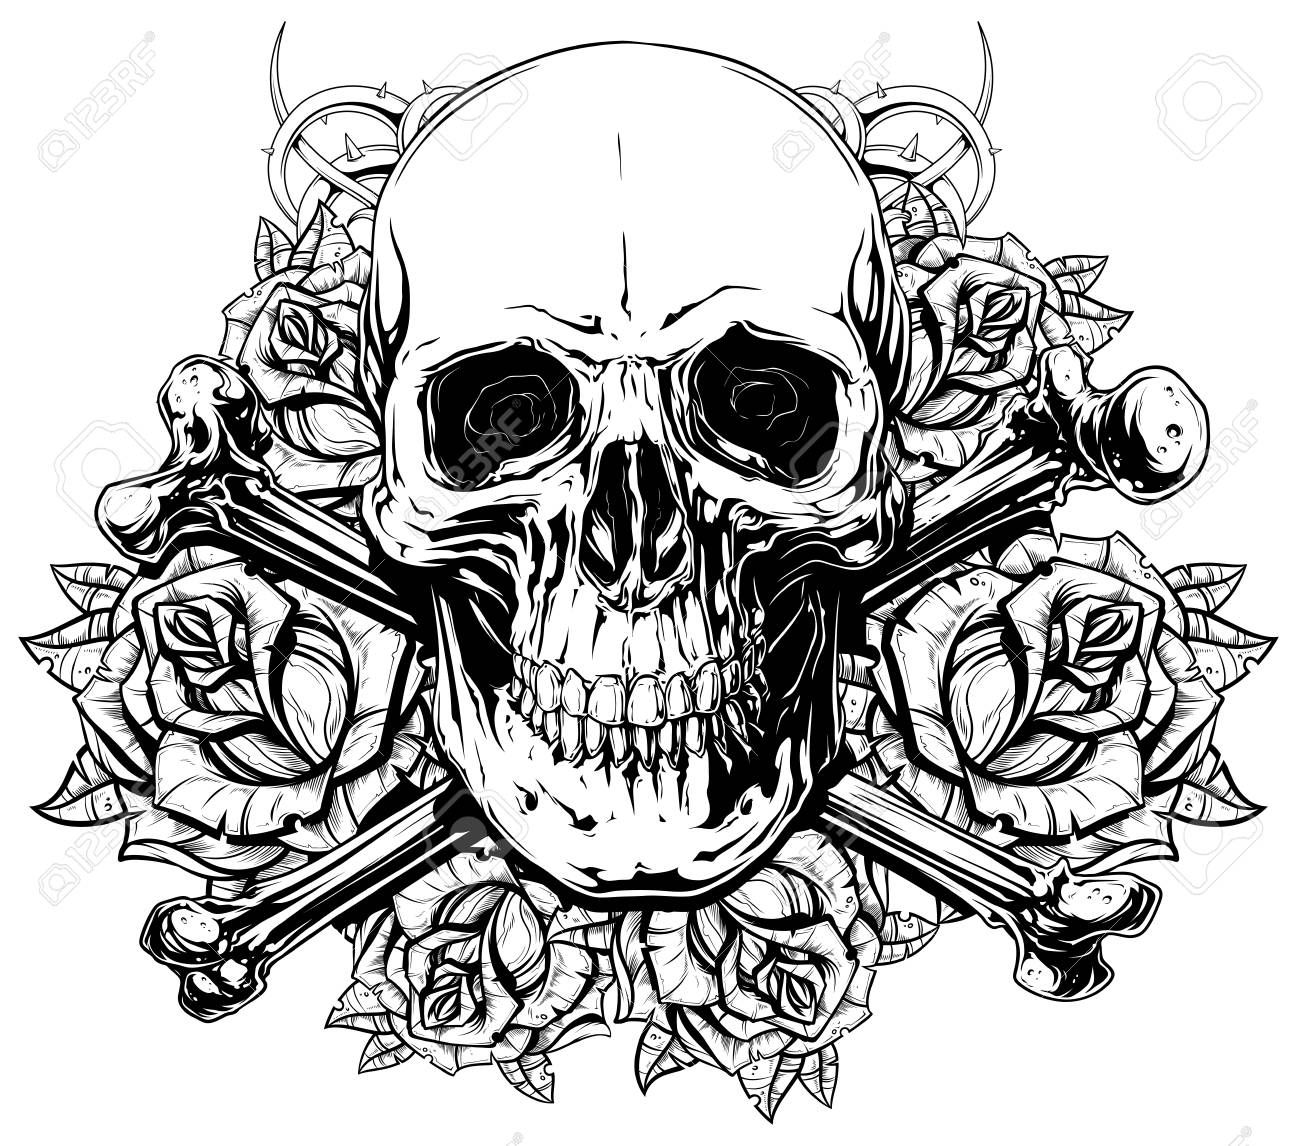 skull and crossbones coloring page skull and crossbones coloring pages getcoloringpagescom crossbones skull page coloring and